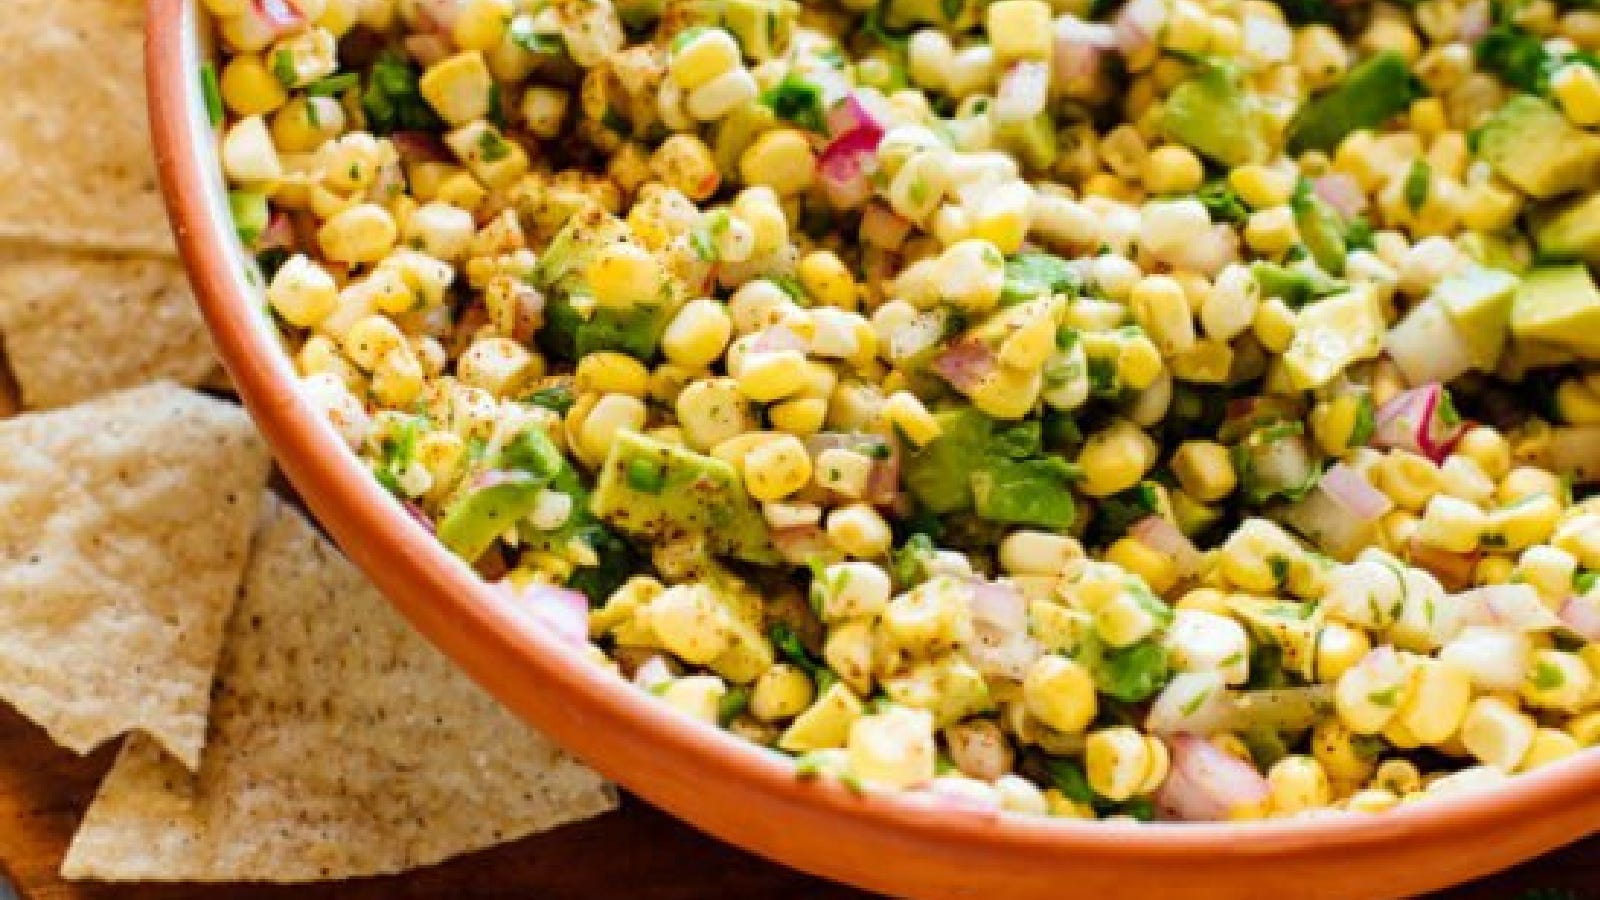 A bowl of fresh corn salsa using with a side of tortilla chips.